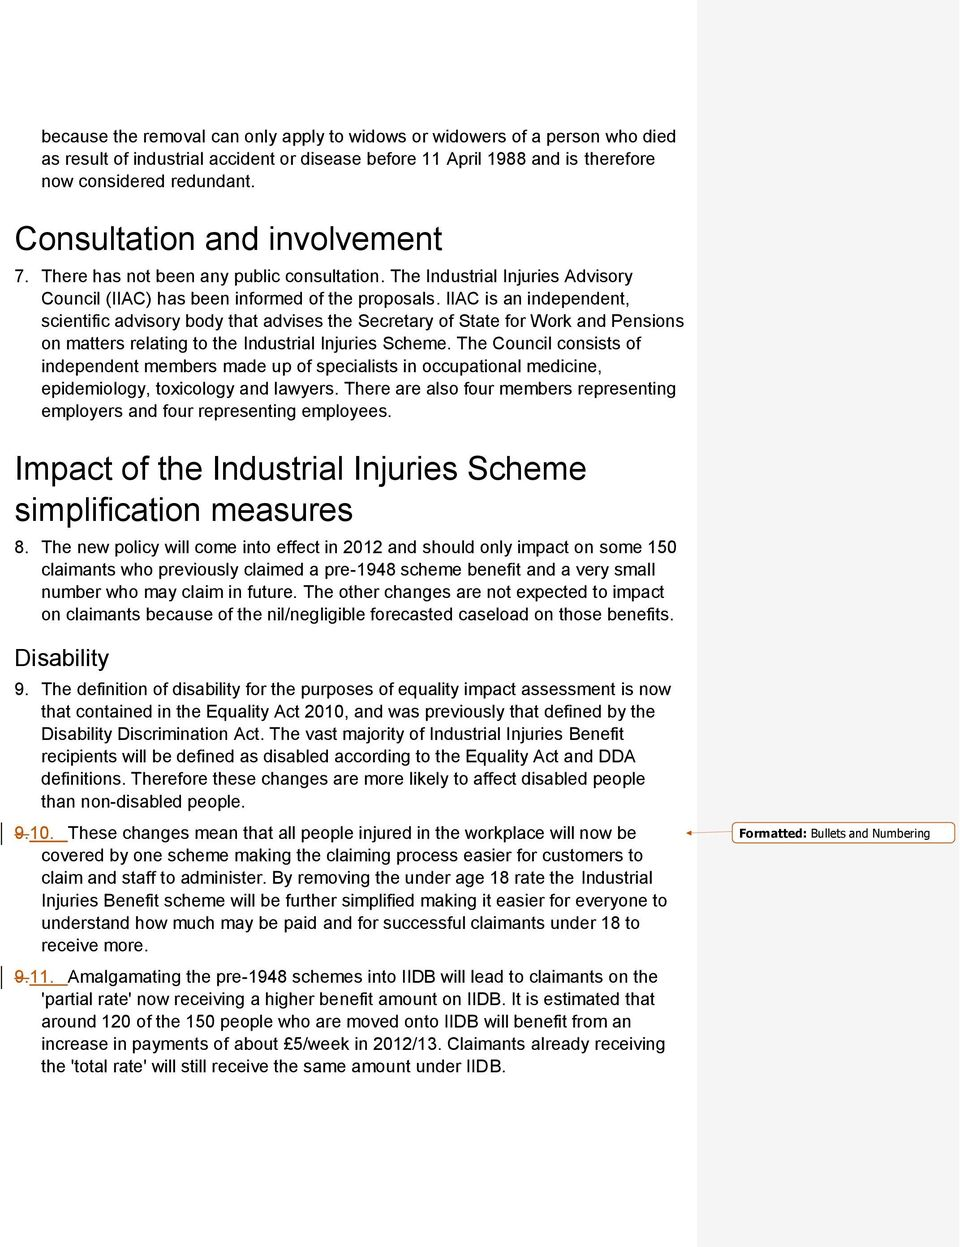 IIAC is an independent, scientific advisory body that advises the Secretary of State for Work and Pensions on matters relating to the Industrial Injuries Scheme.